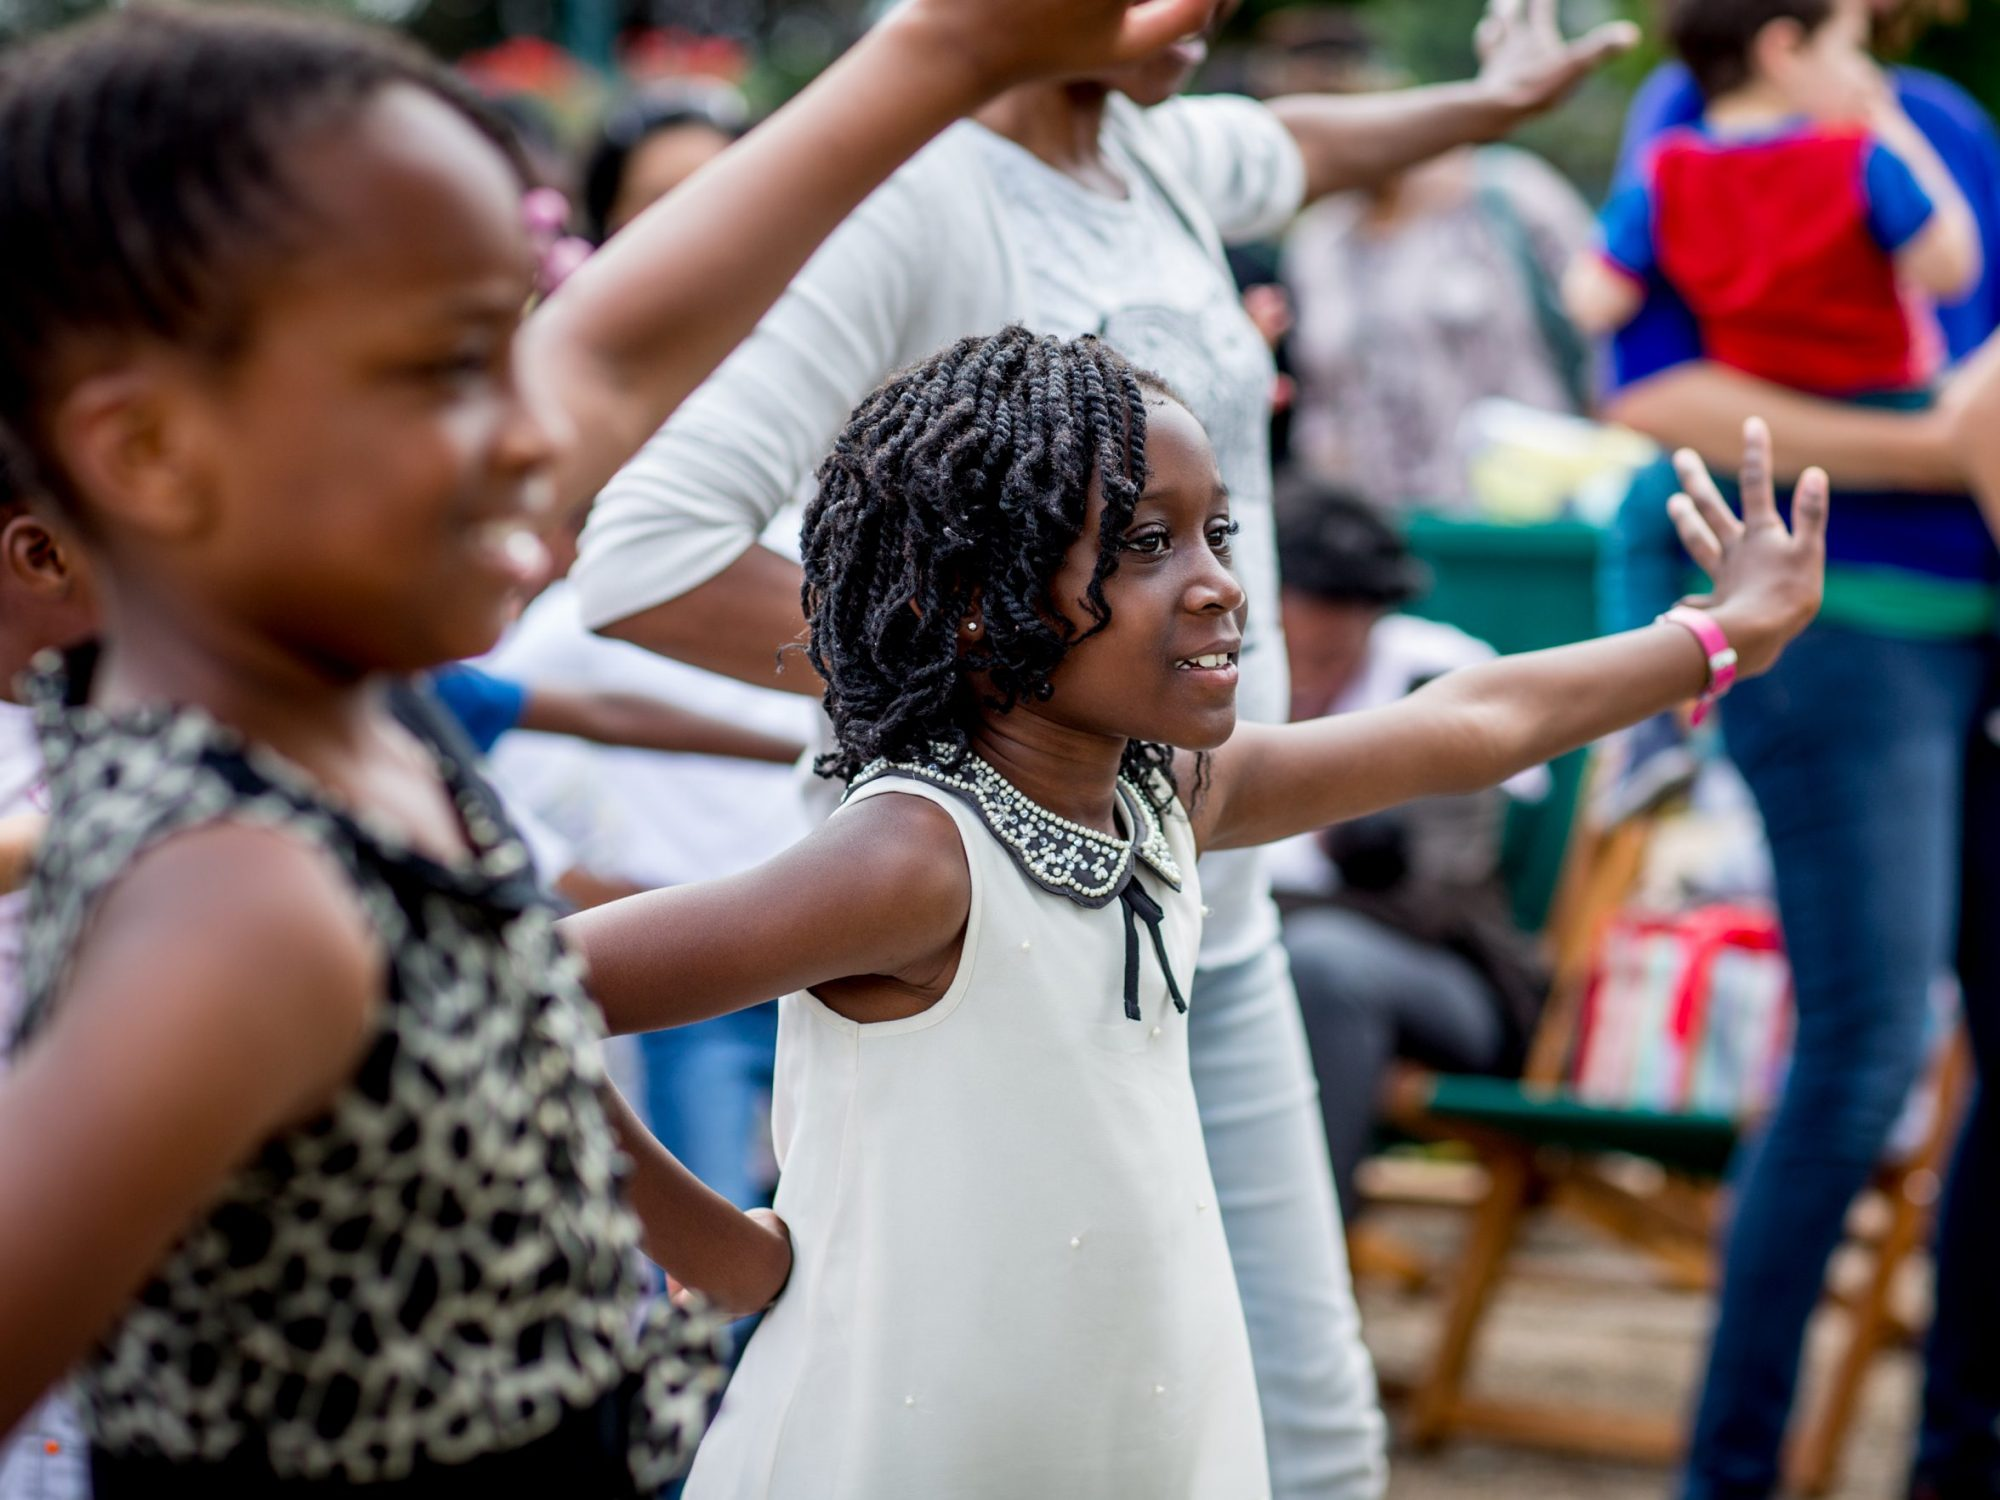 Two girls in close up, in the middle of doing a dance pose, in among other adults and children dancing - they are smiling and their arms are in the air